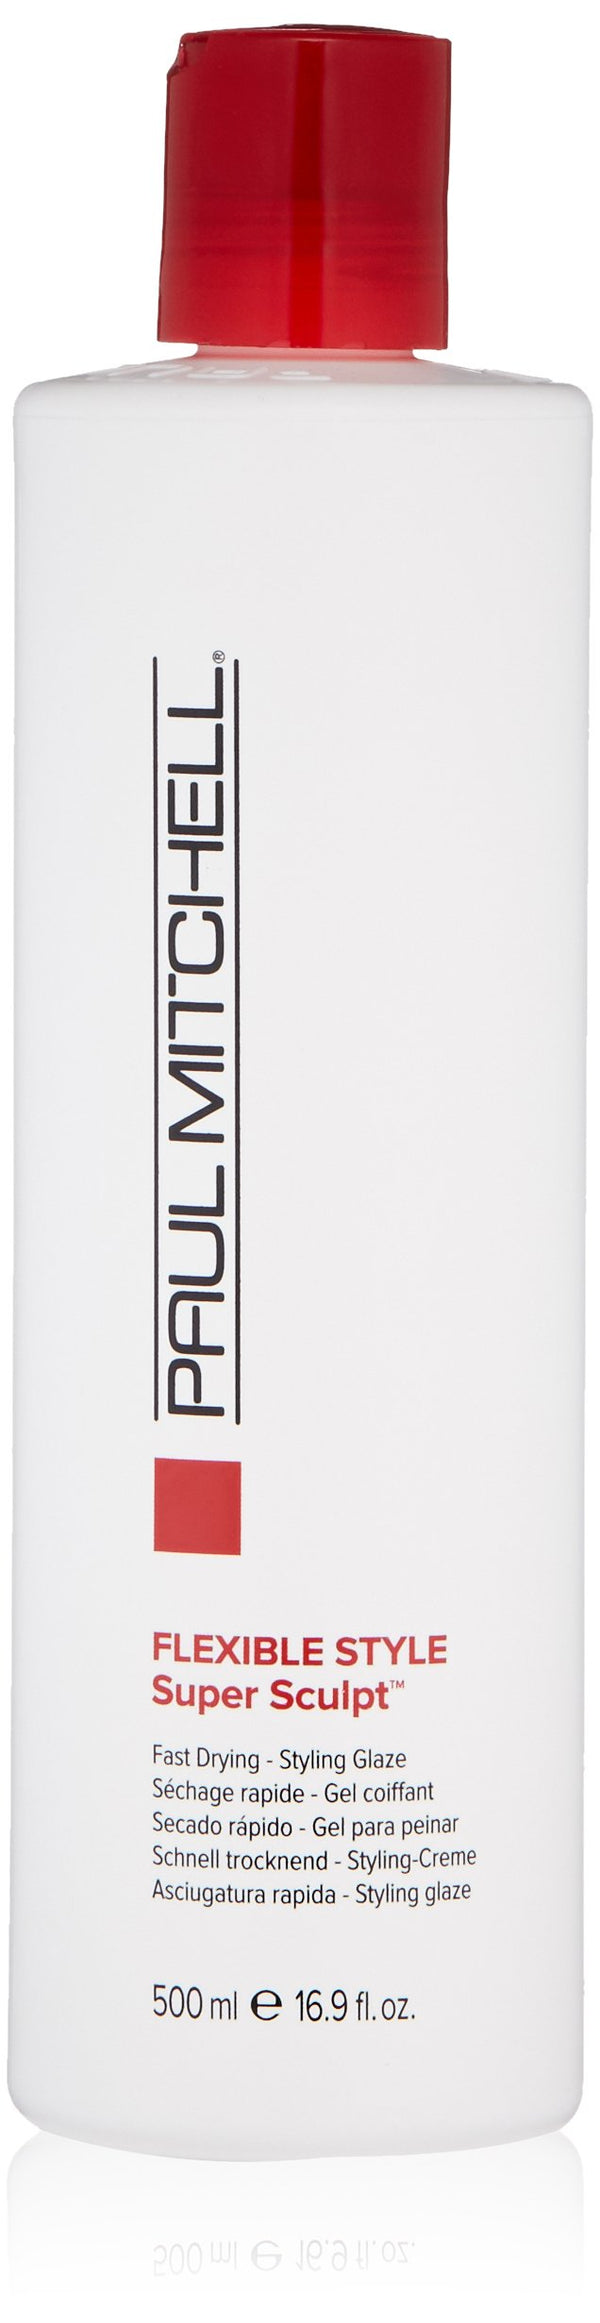 FLEXIBLE STYLE - Hair Sculpting Lotion - Hypnotic Store